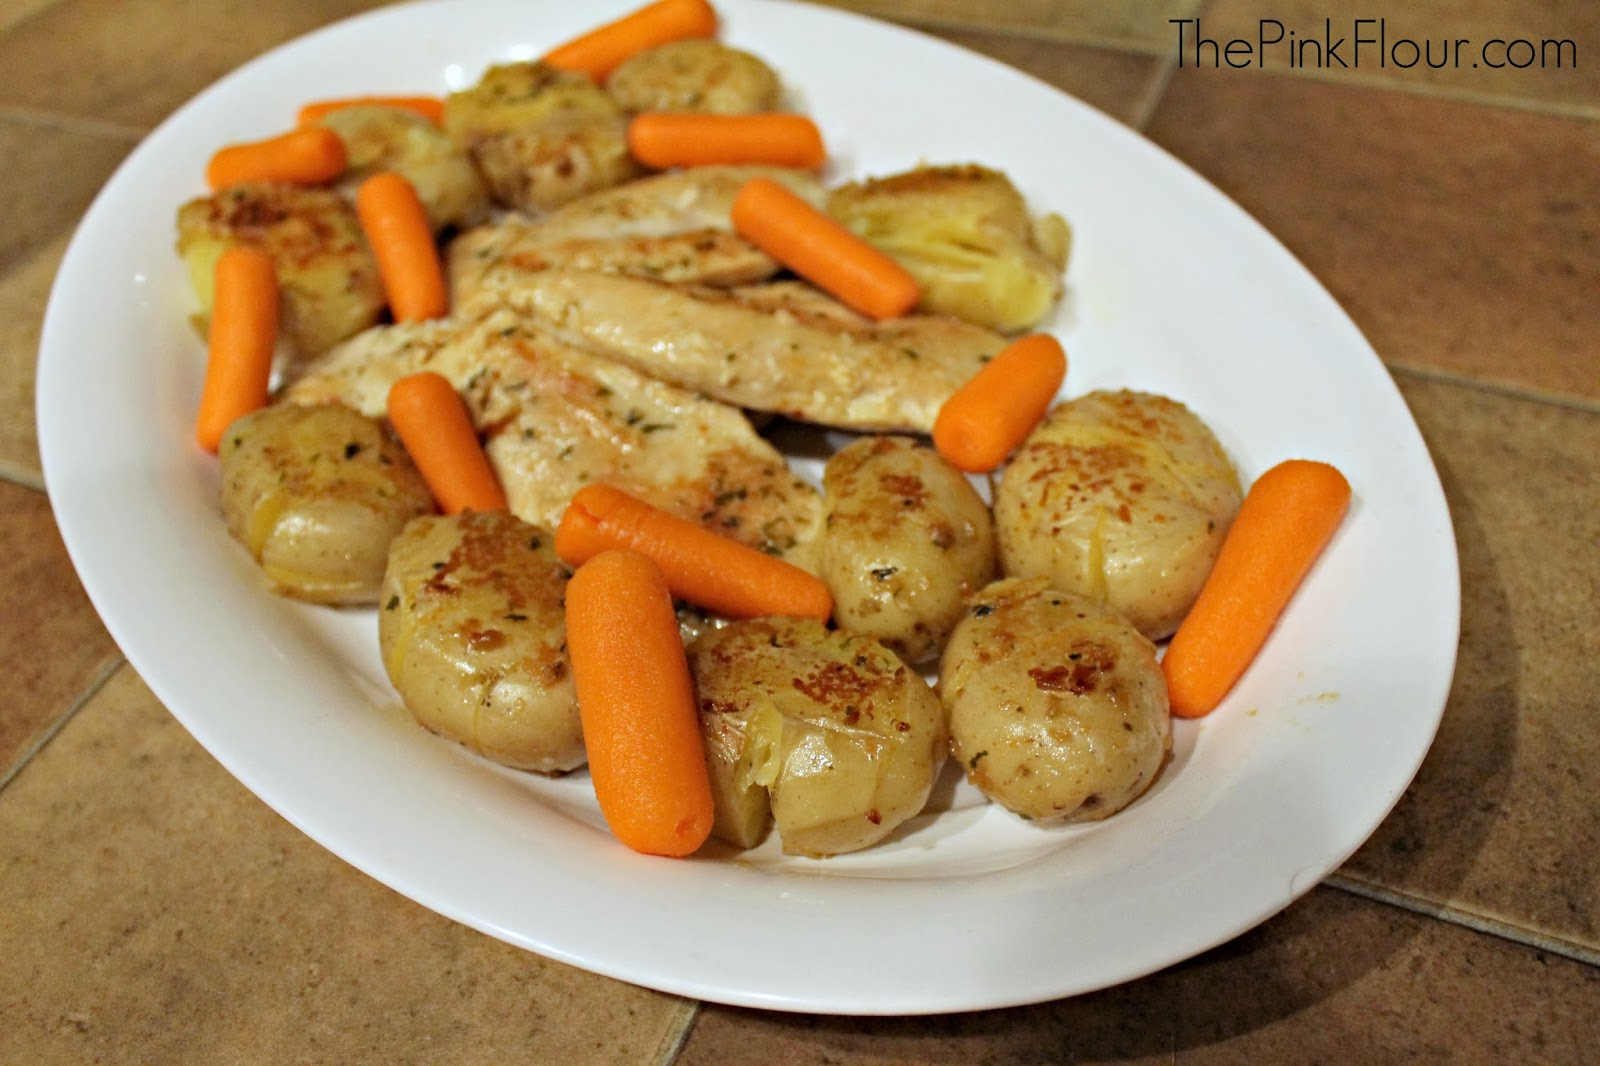 Garlic & Herb Chicken with Smashed Potoatoes from www.thepinkflour,com #shop